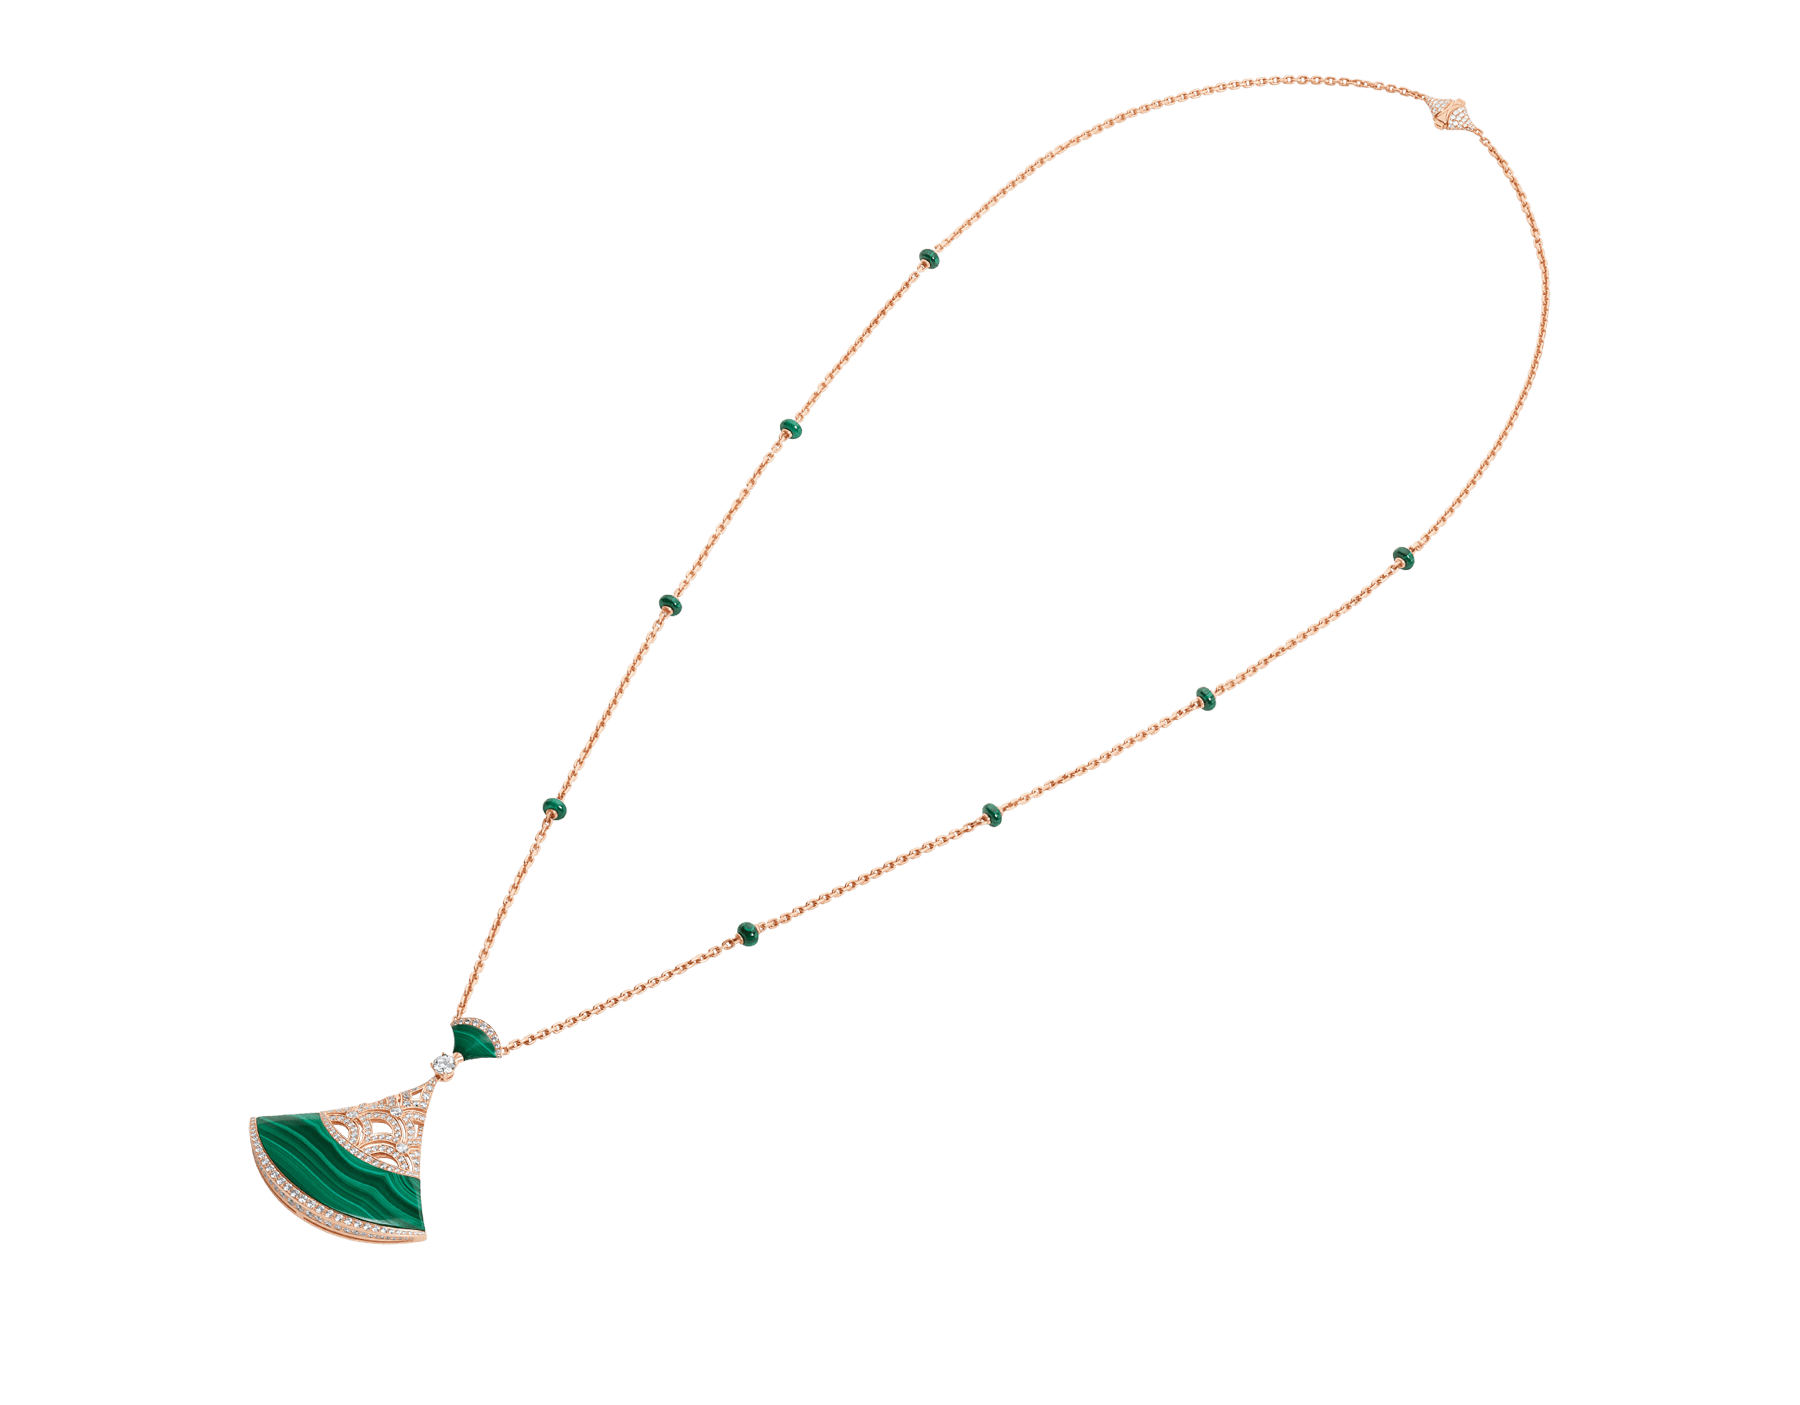 Divas' Dream necklace with 18 kt rose gold chain set with malachite beads and diamonds, and 18 kt rose gold openwork pendant set with a diamond (0.50 ct), pavé diamonds and malachite inserts. Special edition exclusive to Middle East 358222 image 2